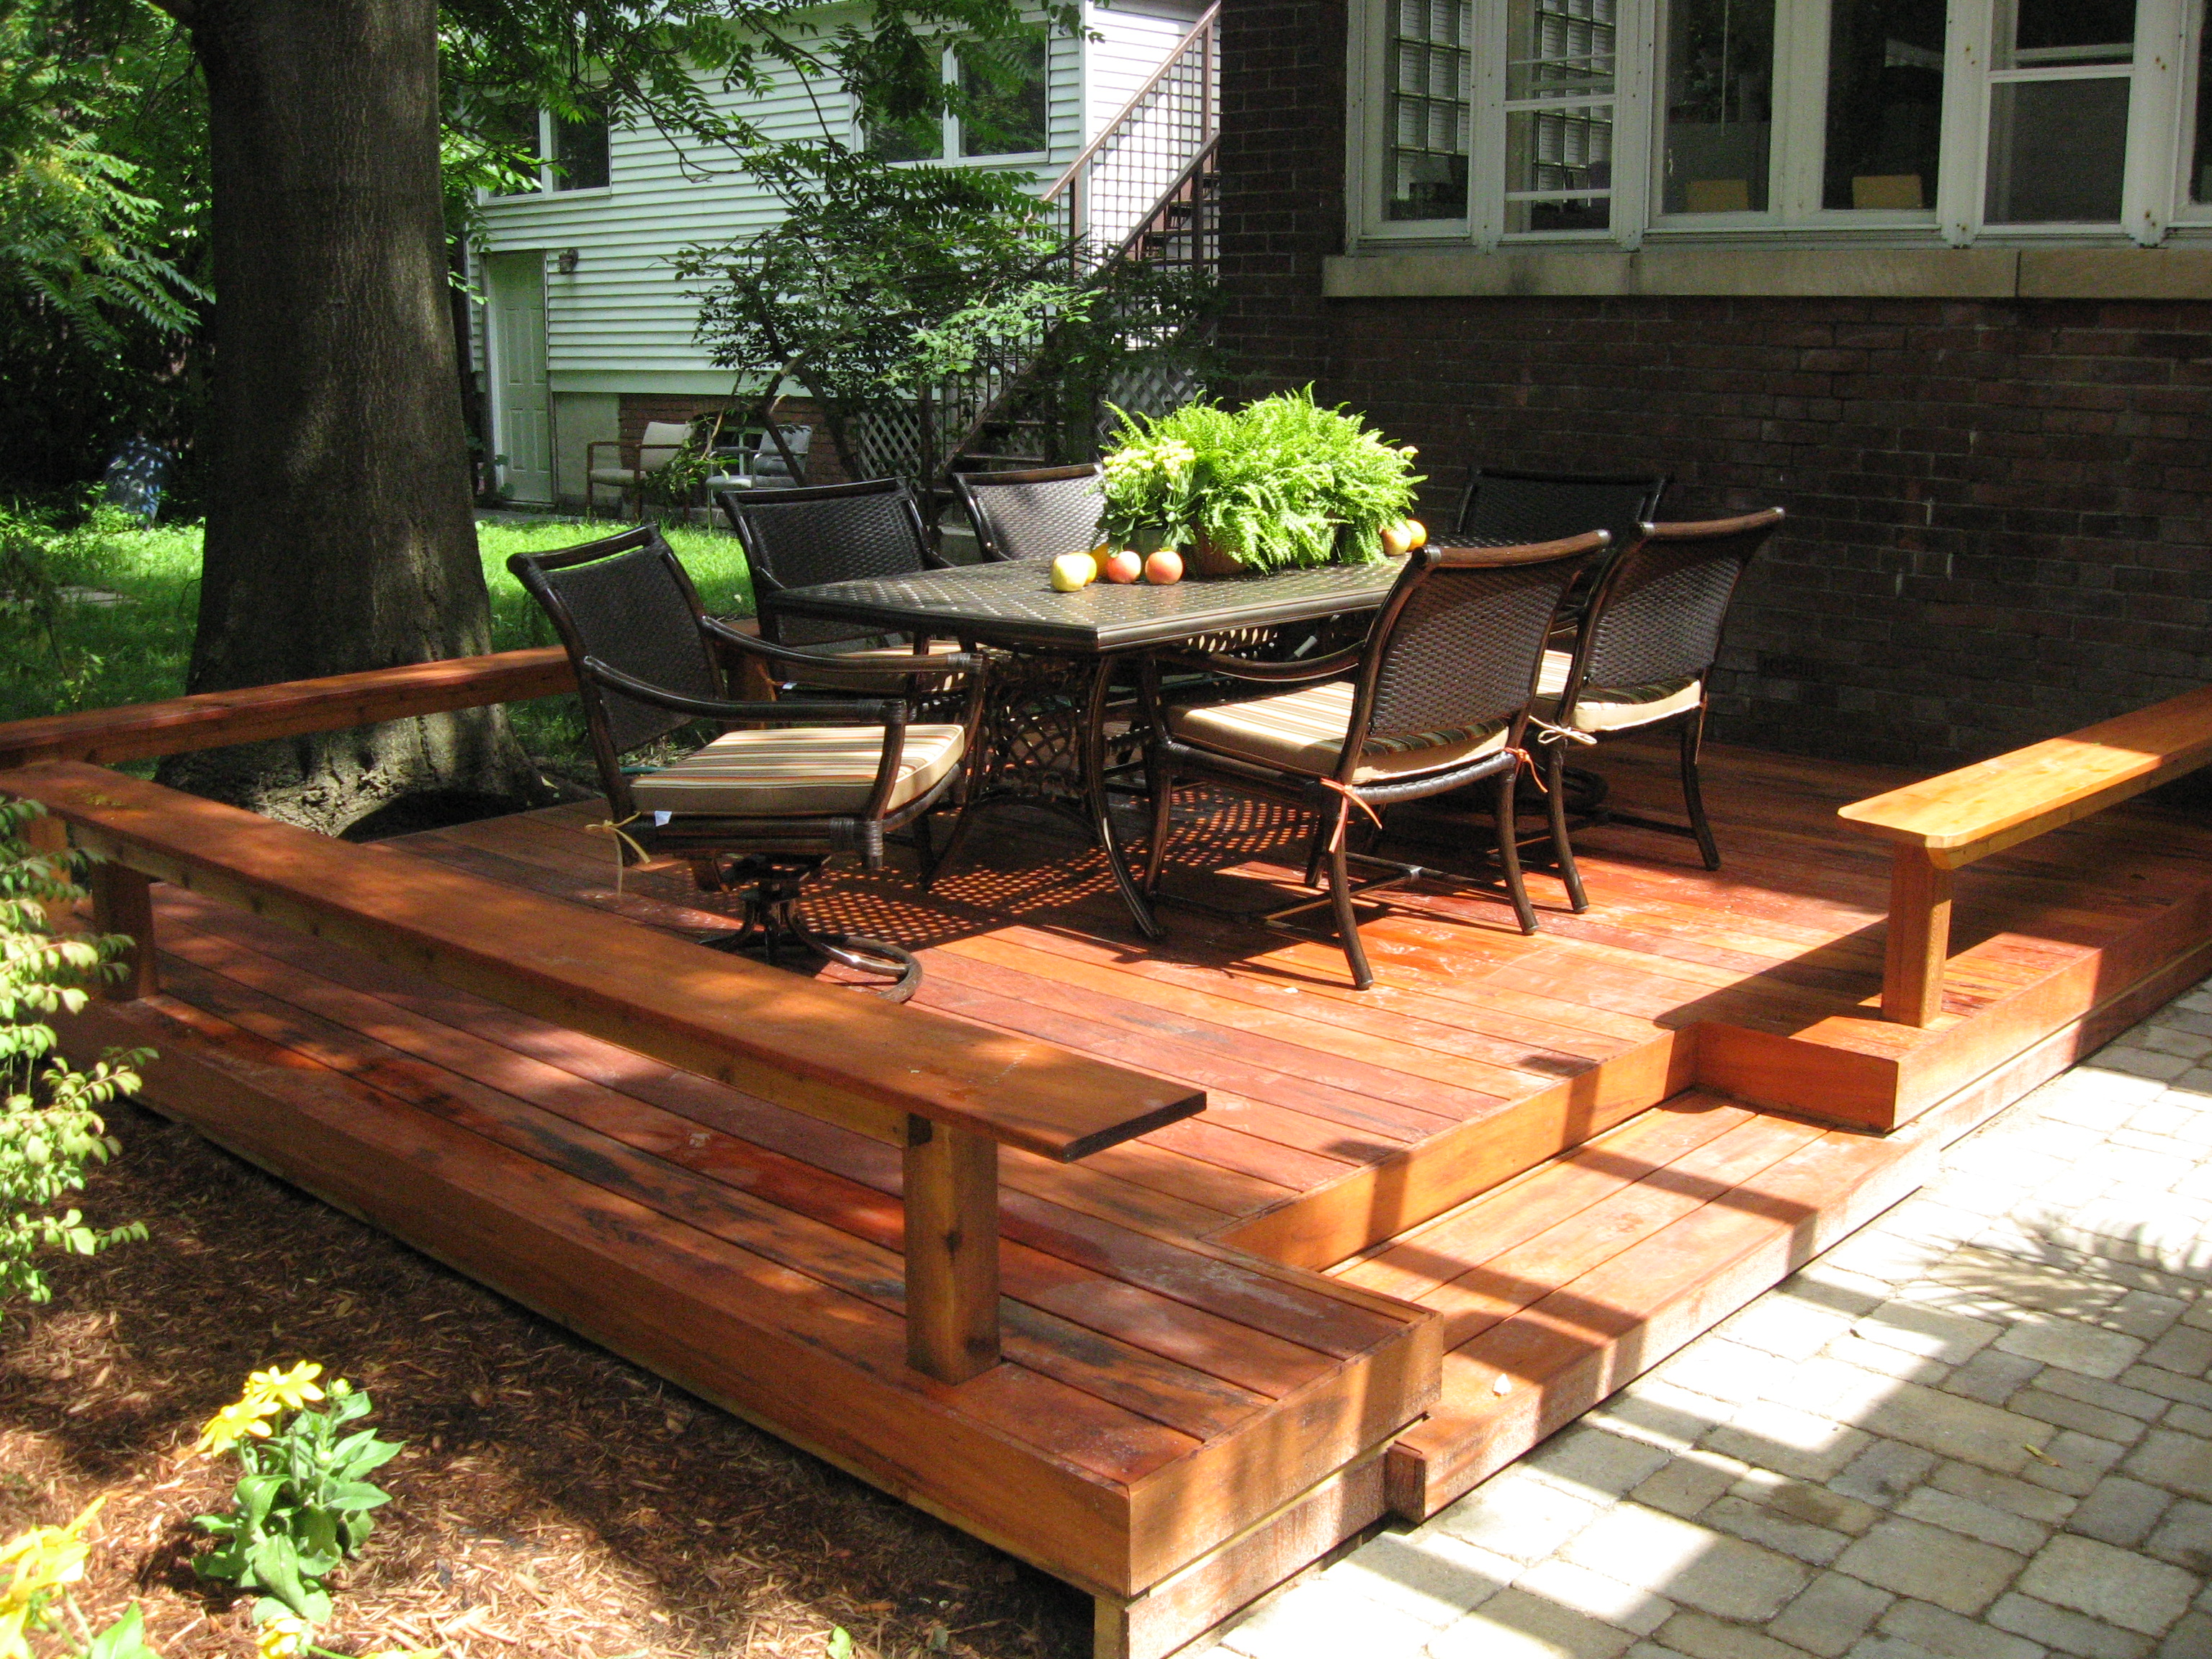 Deck vs. Patio: What Is Best for You? | HuffPost Life on Low Cost Patio Ideas id=98109